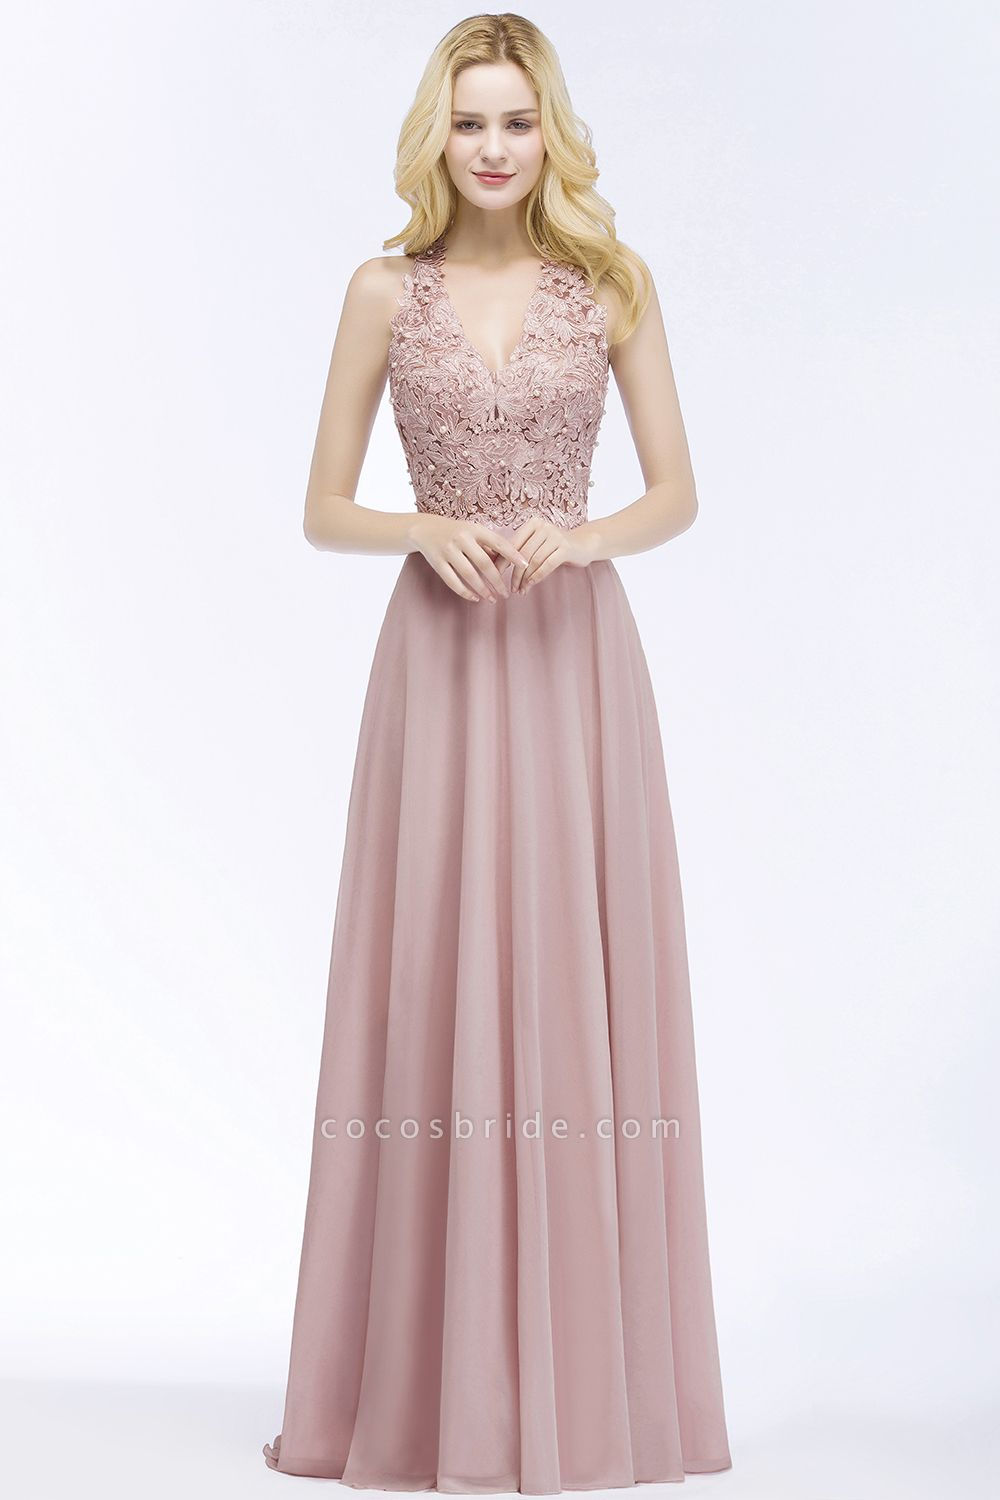 A-line Chiffon Appliques V-neck Sleeveless Floor-Length Bridesmaid Dresses with Pearls